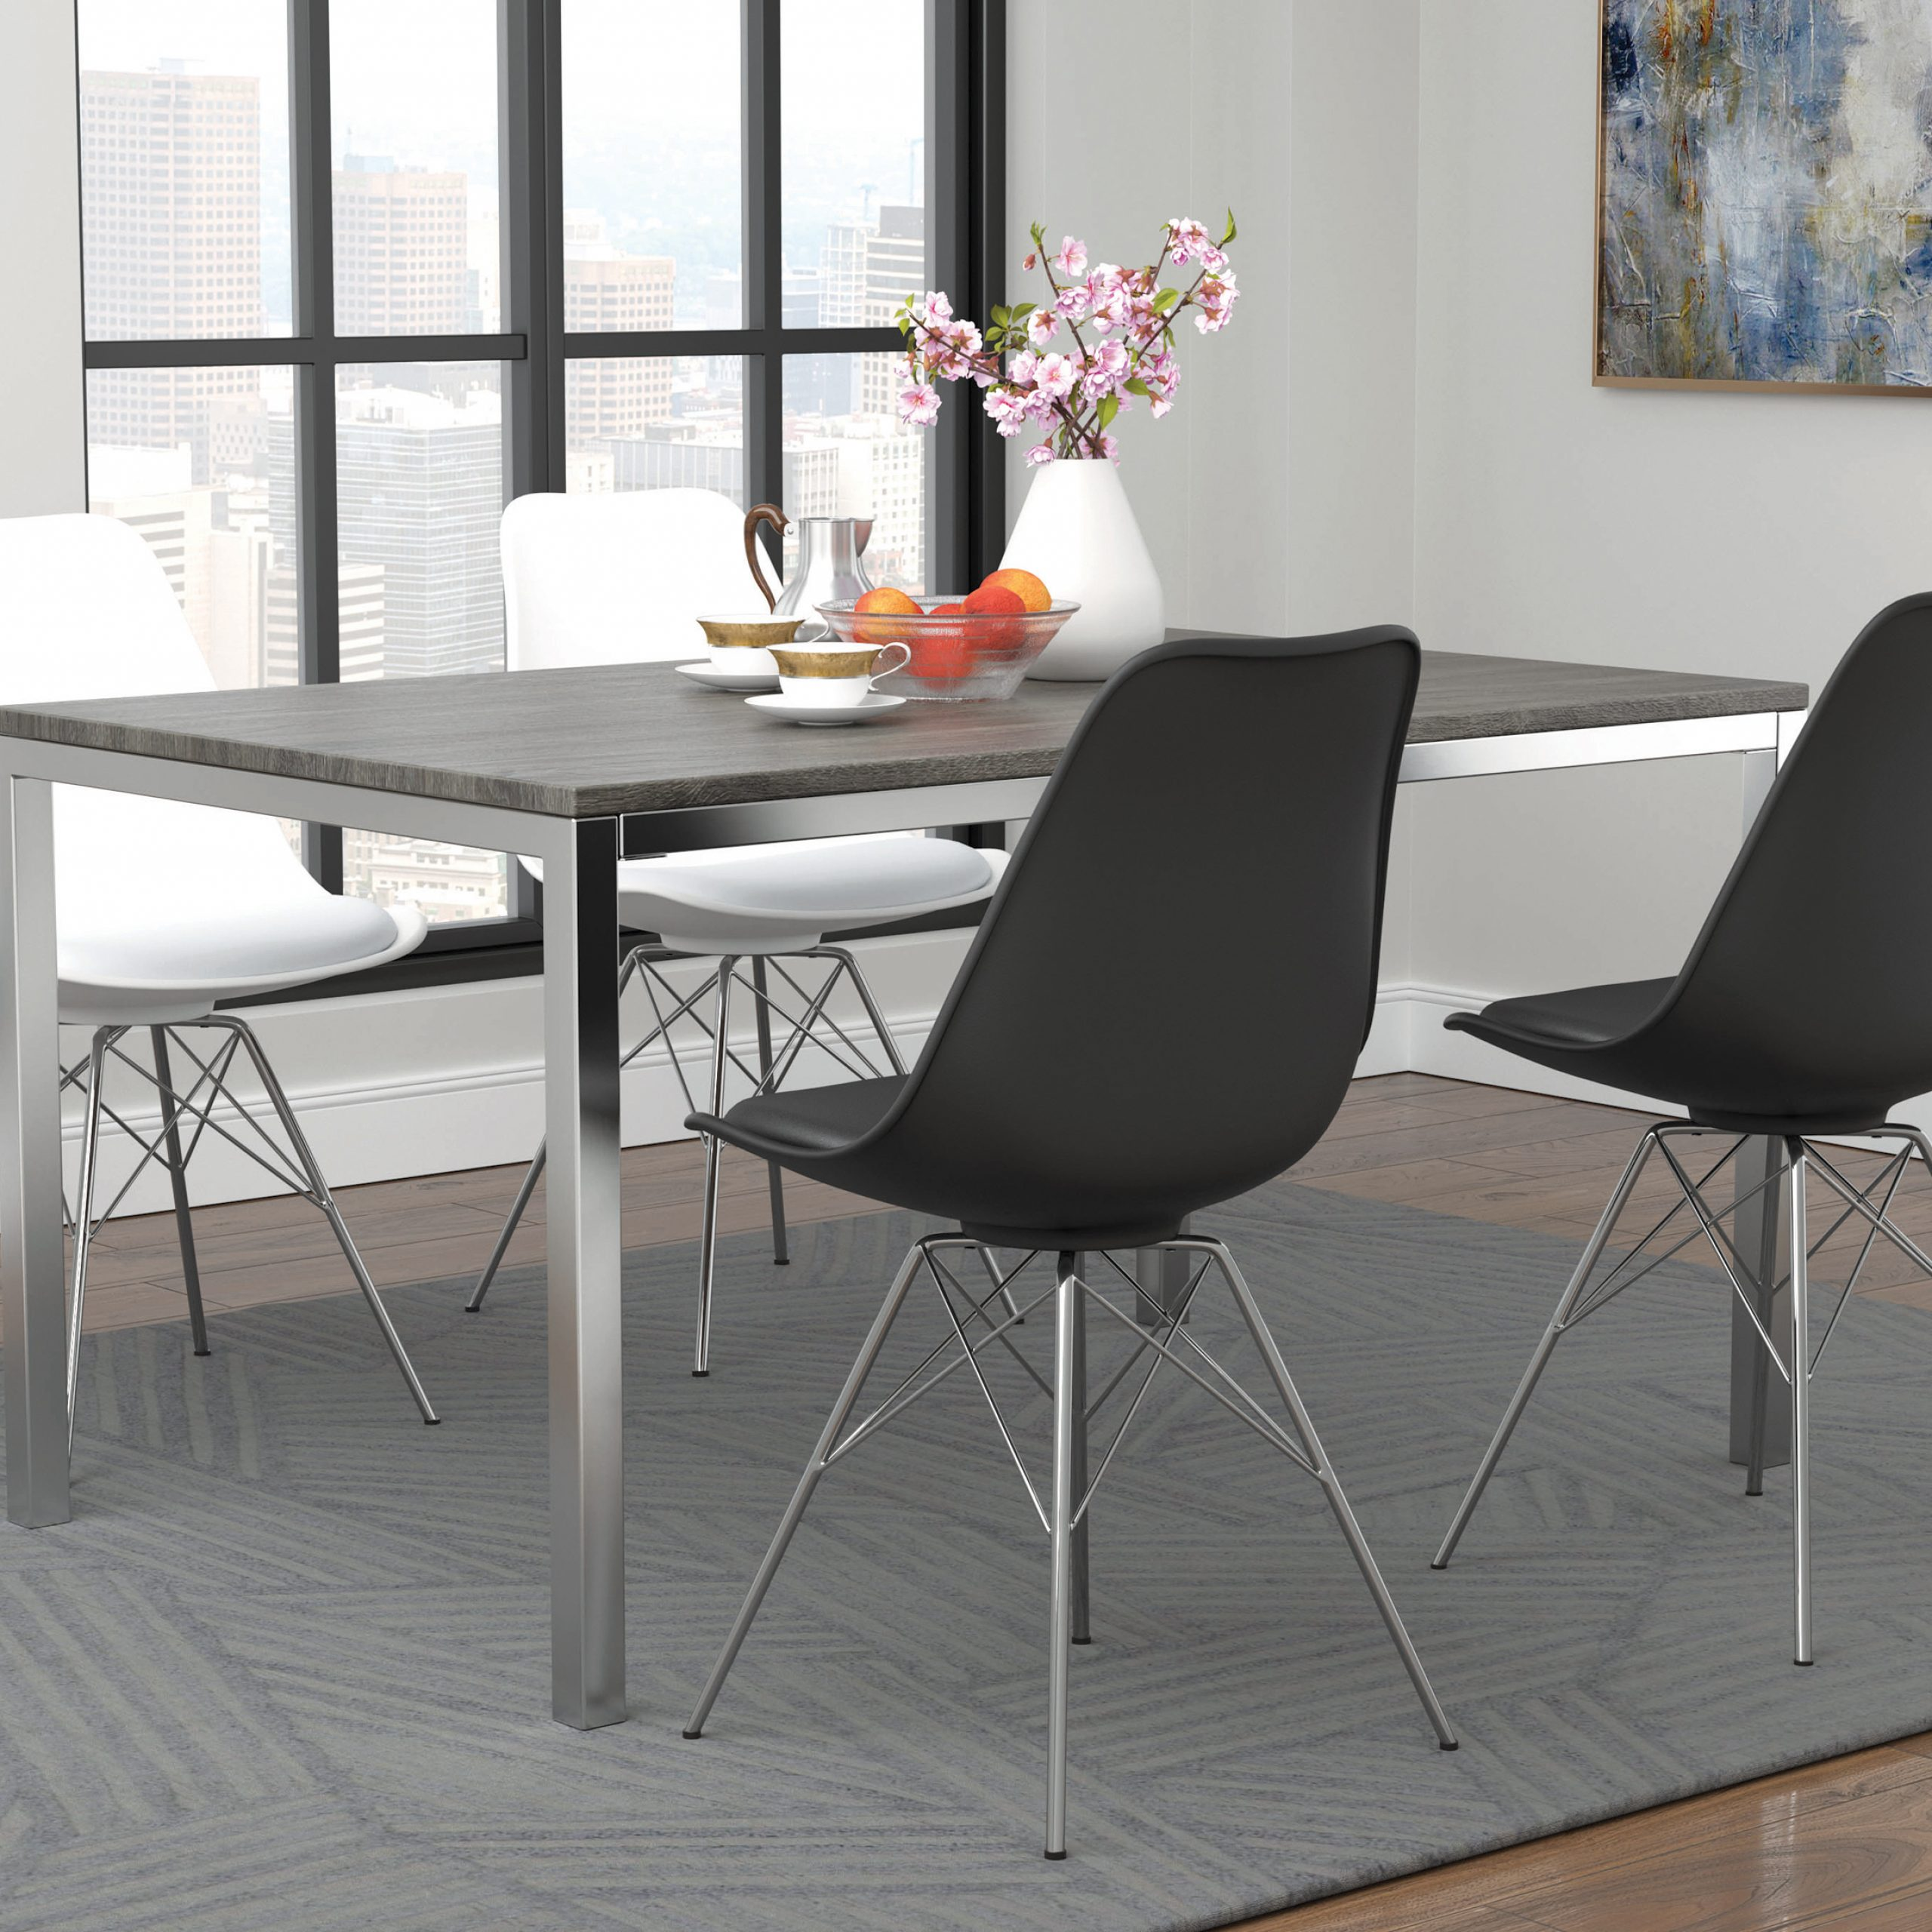 Mckenzie Rectangular Dining Table Weathered Grey And Chrome Inside Most Recent Chrome Contemporary Square Casual Dining Tables (View 23 of 25)